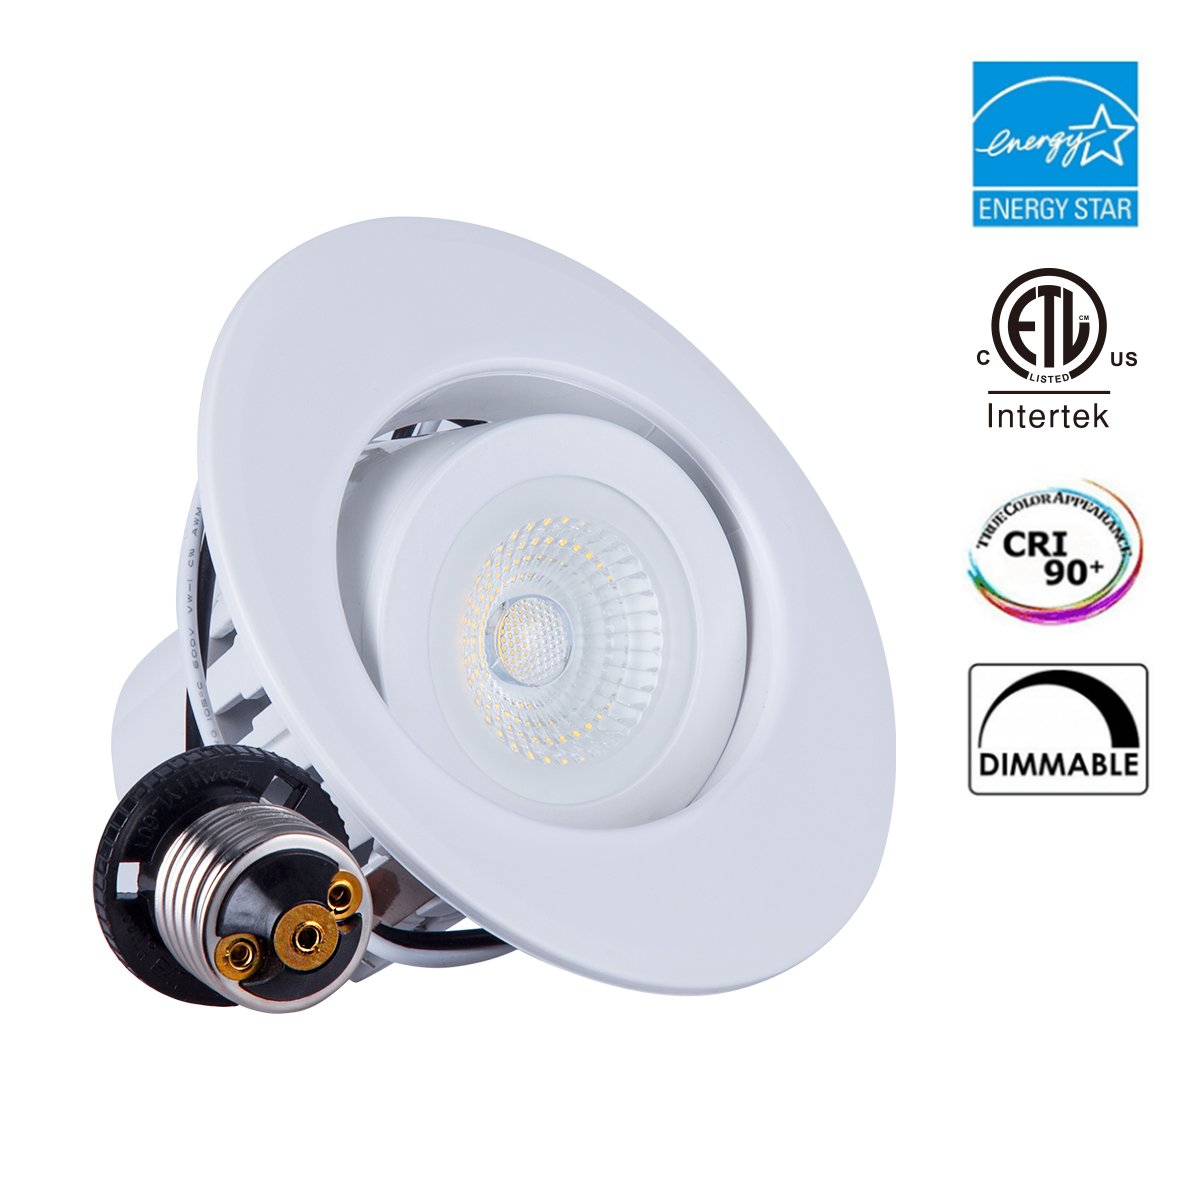 Lighting 1 Pack 4 inch COB Dimmable Gimbal Recessed LED Downlight, High CRI 90+ t, 10W (75W Equiv.), ENERGY STAR, 5000K Daylight, 800lm,Adjustable Eyeball LED Retrofit Lighting Fixture,5 Year Warranty